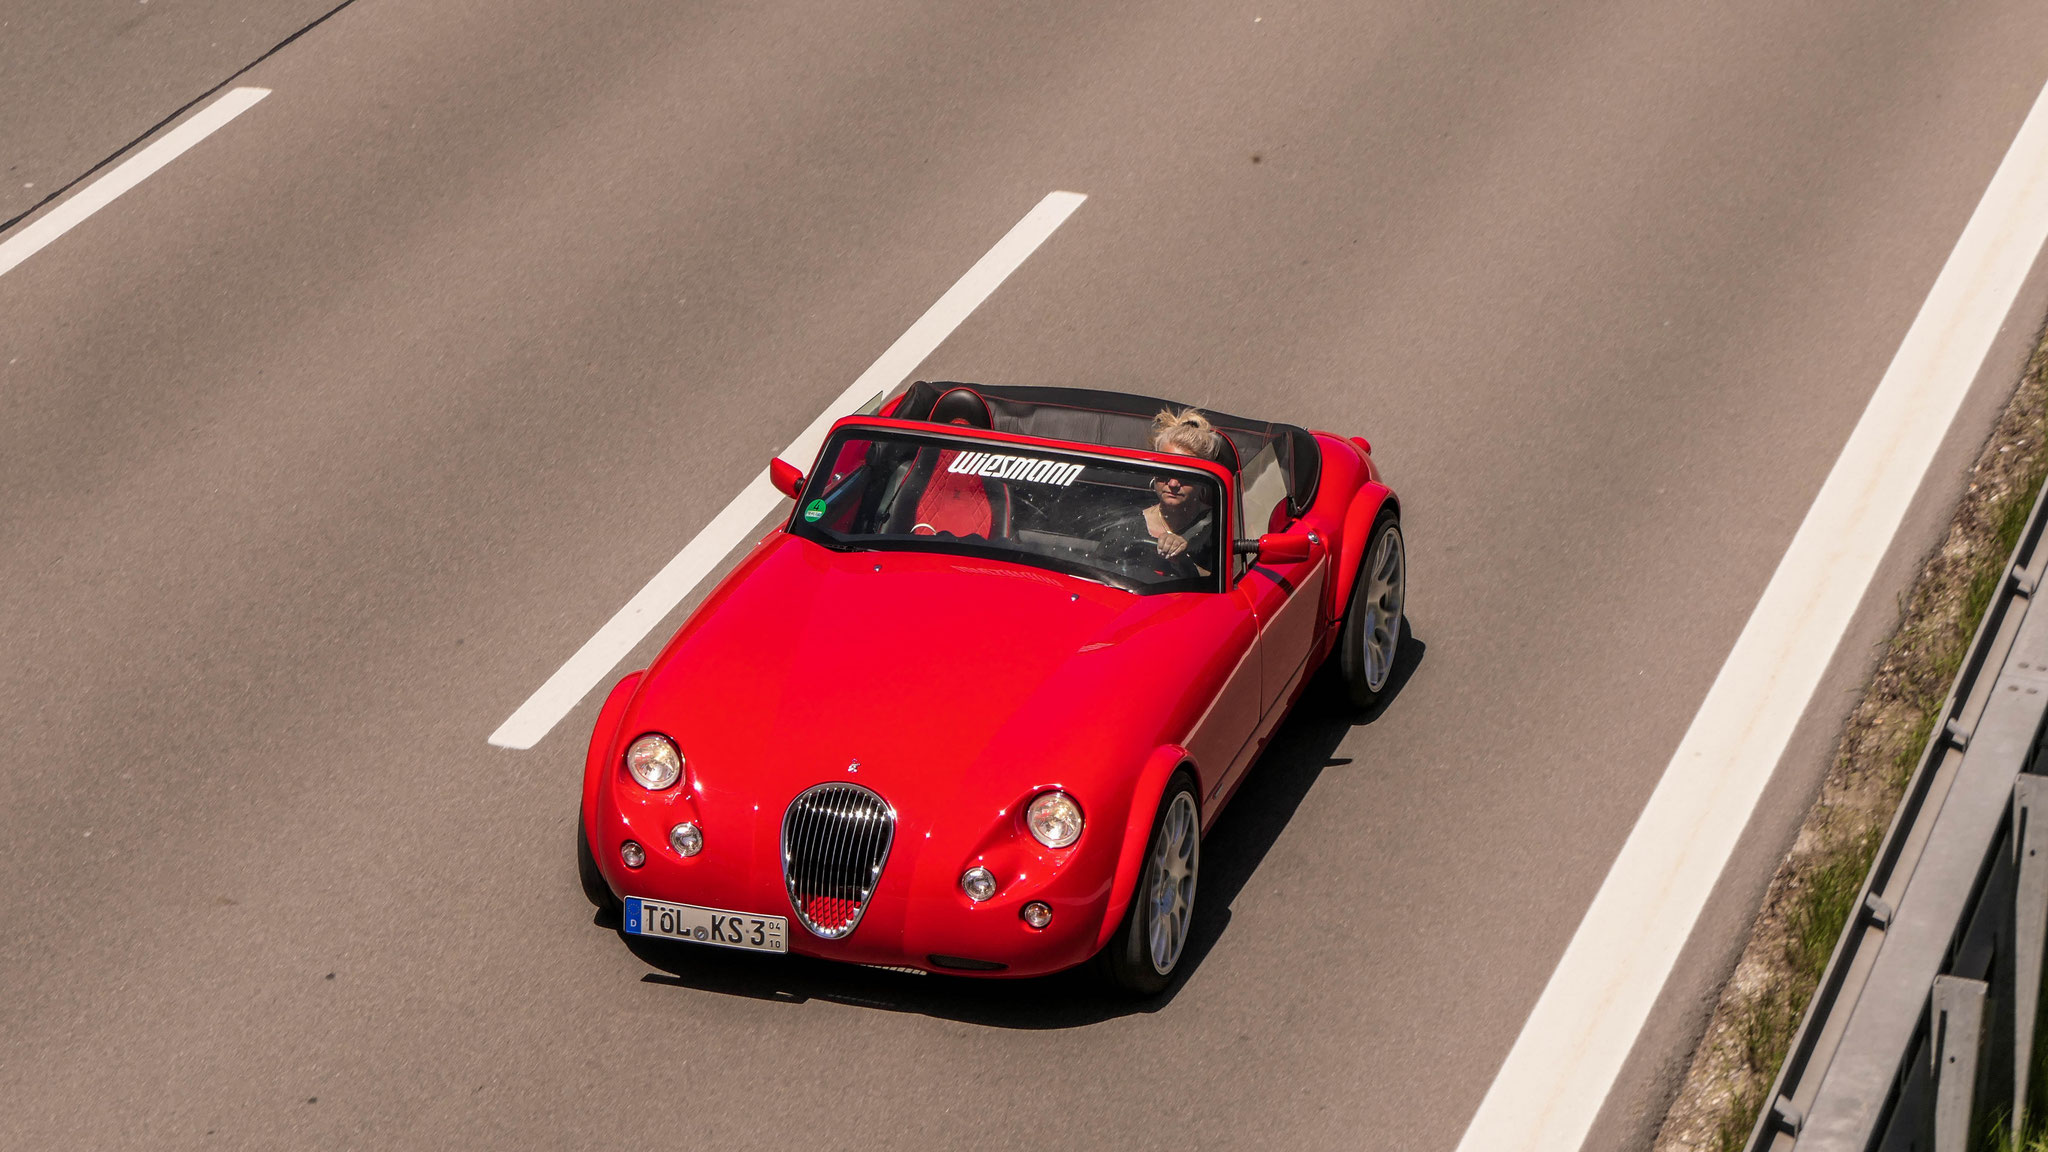 Wiesmann Roadster MF4 - TÖL-KS-3